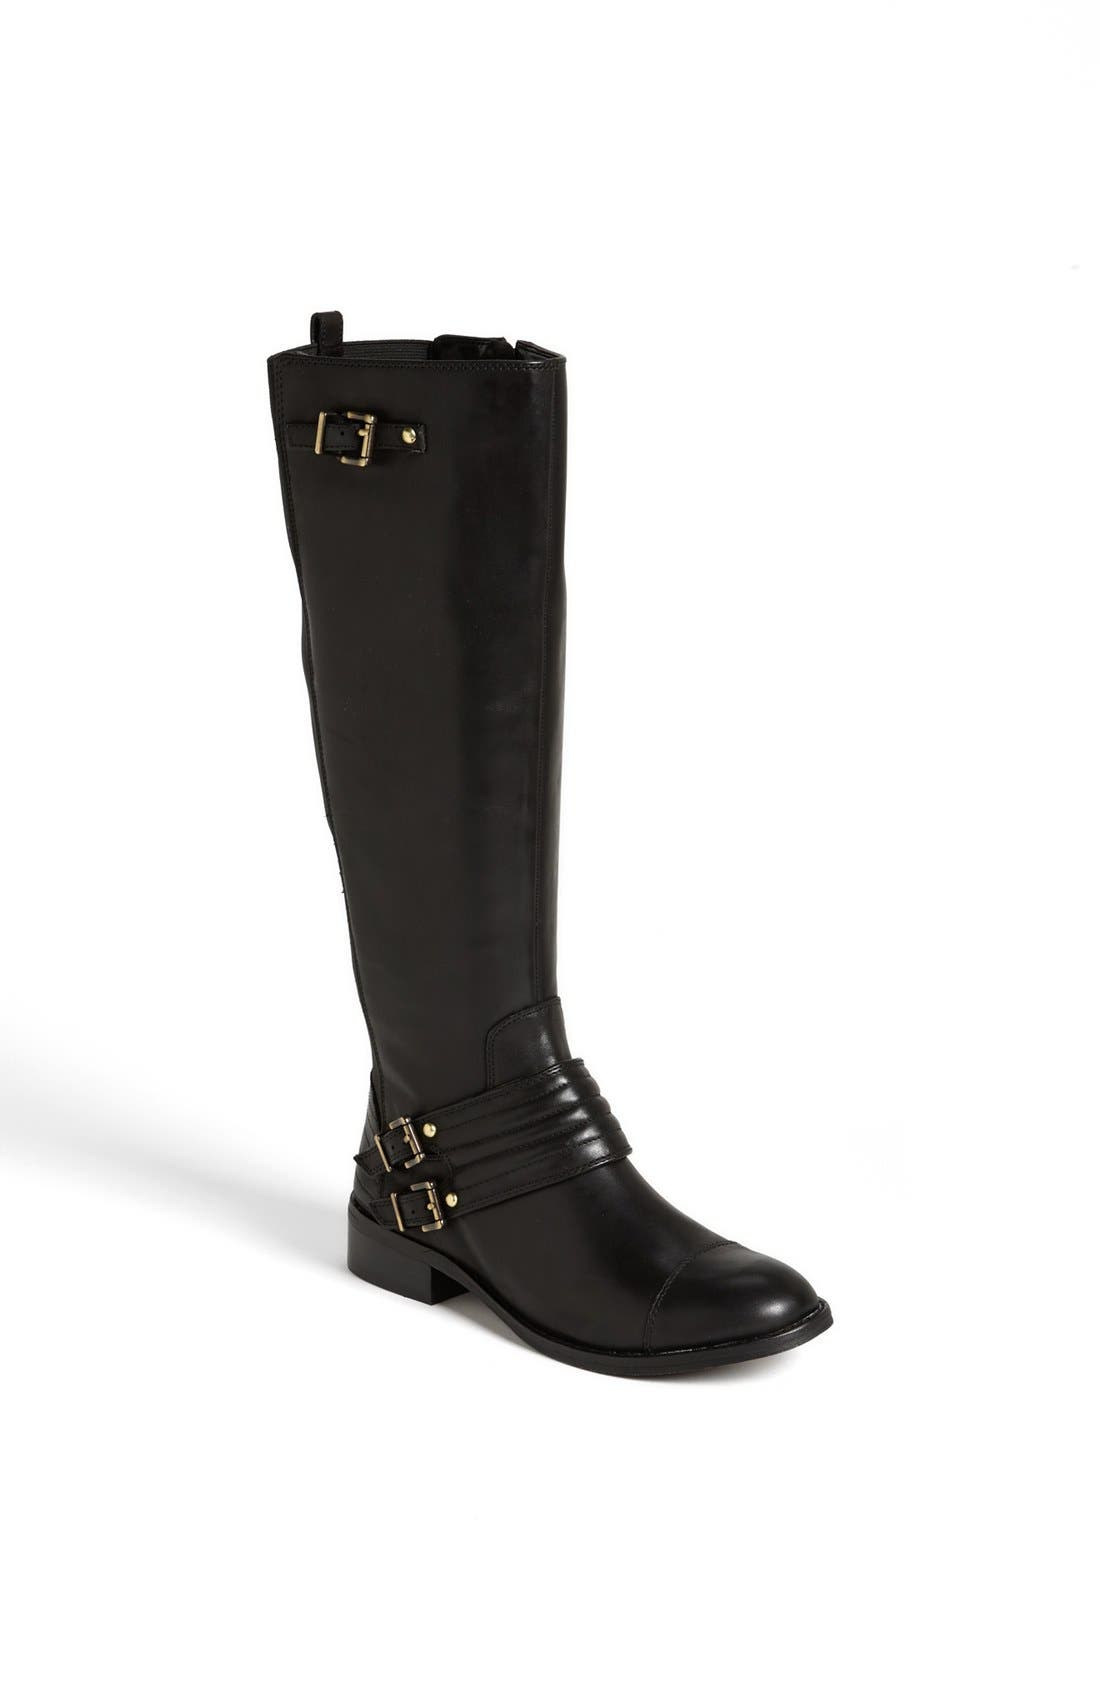 Alternate Image 1 Selected - Jessica Simpson 'Elmont' Boot